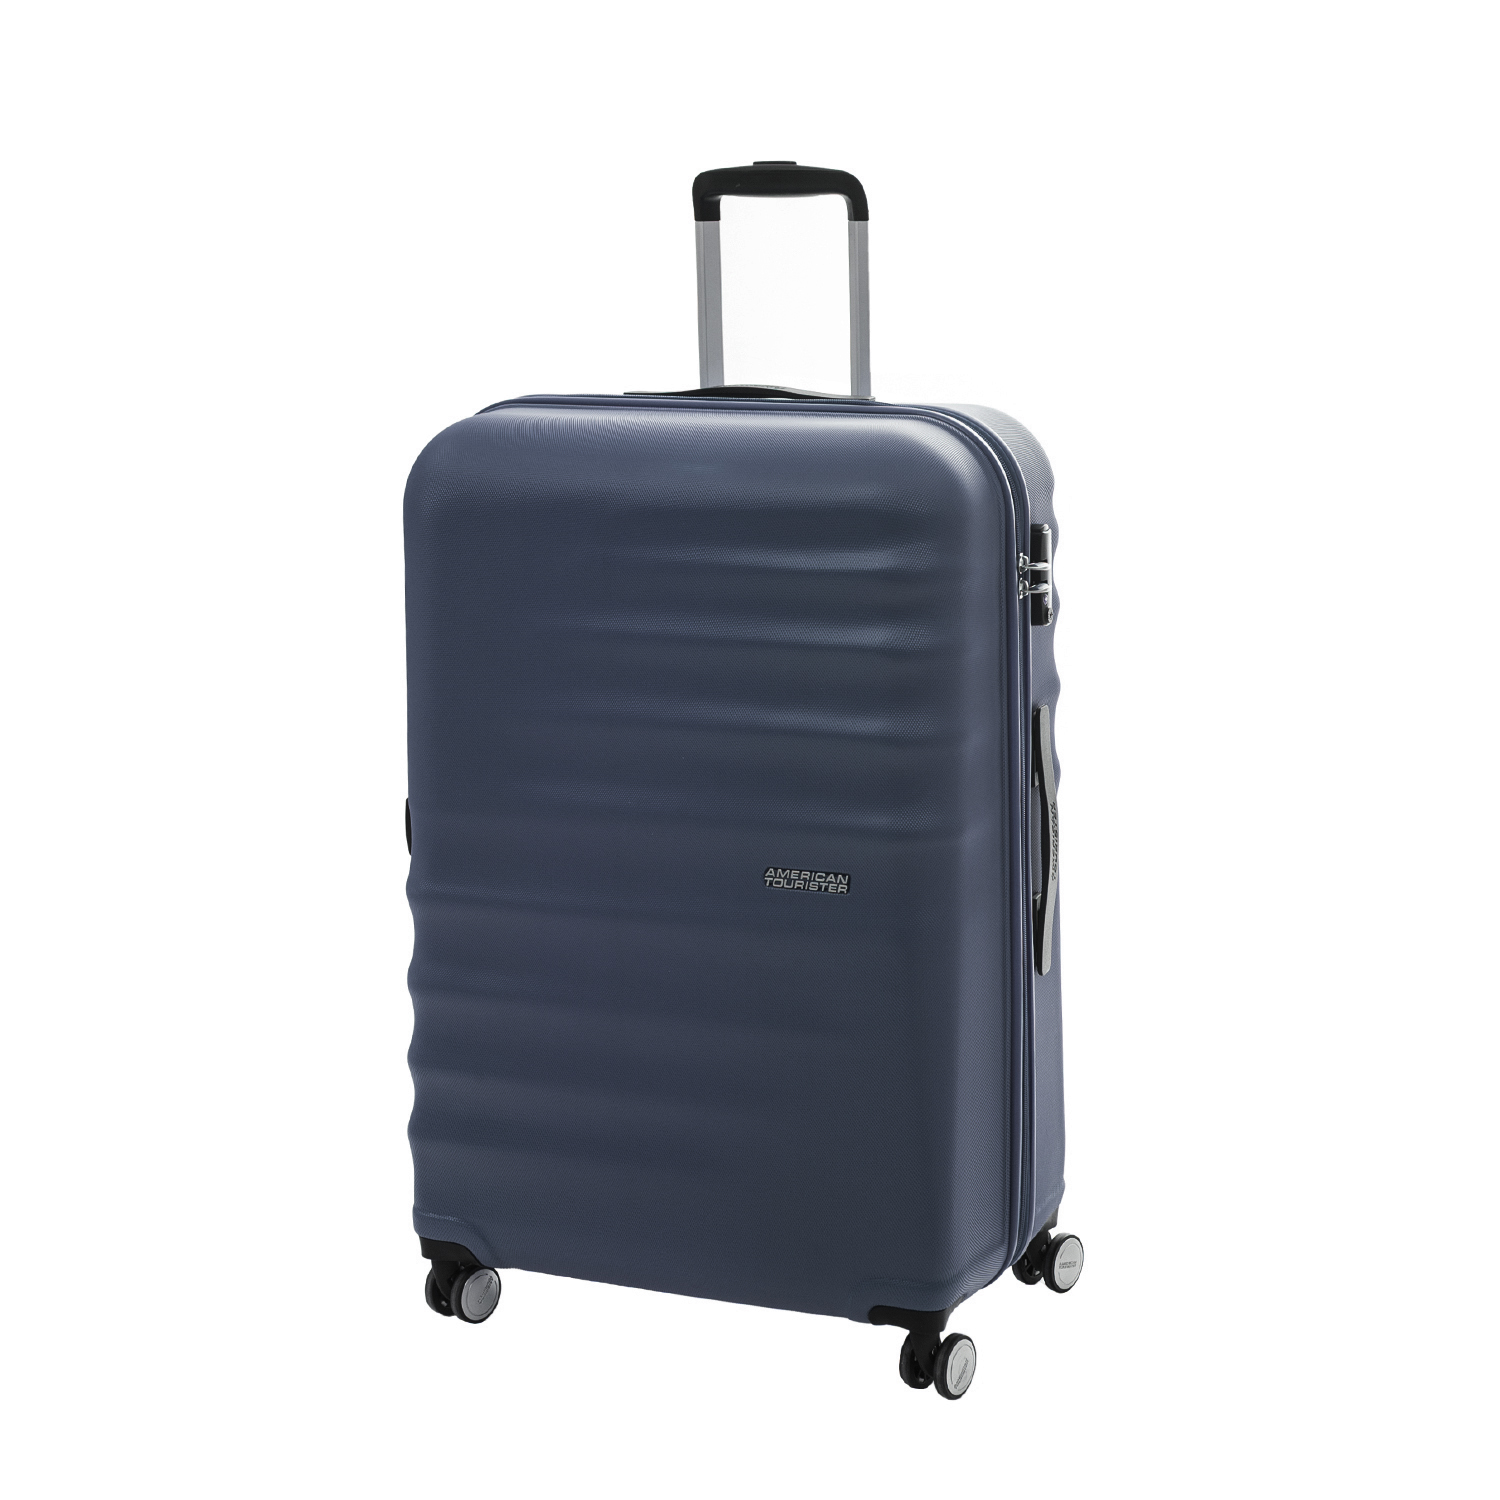 0e01416fa4 AMERICAN TOURISTER - Βαλίτσα American Tourister WAVEBREAKER SPINNER ανθρακί